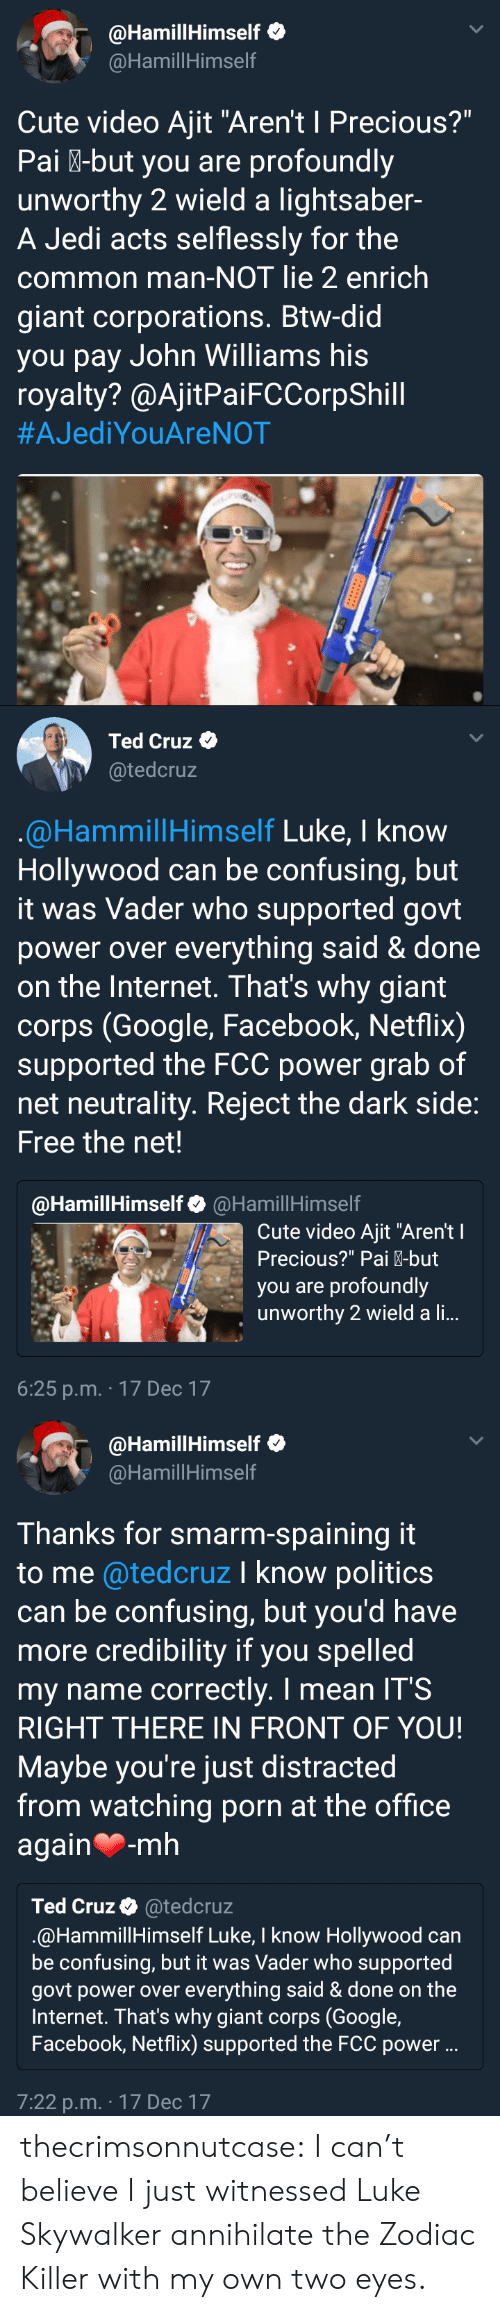 """the zodiac killer: @HamillHimself  @HamillHimself  Cute video Ajit """"Aren't I Precious?  Pai -but you are profoundly  unworthy 2 wield a lightsaber-  A Jedi acts selflessly for the  common man-NOT lie 2 enrich  giant corporations. Btw-did  you pay John Williams his  royalty? @AjitPaiFCCorpShill  #AJediYouAreNOT   Ted Cruz  @tedcruz  @HammillHimself Luke, I know  Hollywood can be confusing, but  it was Vader who supported govt  power over everything said & done  on the Internet. That's why giant  corps (Google, Facebook, Netflix)  supported the FCC power grab of  net neutrality. Reject the dark side:  Free the net!  @HamillHimself @HamillHimself  Cute video Ajit """"Aren't I  Precious?"""" Pai 8-but  you are profoundly  unworthy 2 wield a Ii..  6:25 p.m. 17 Dec 17   @HamillHimself  @HamillHimself  Thanks for smarm-spaining it  to me @tedcruz I know politics  can be confusing, but you'd have  more credibility if you spelled  my name correctly. I mean IT'S  RIGHT THERE IN FRONT OF YOU  Maybe you're just distracted  from watching porn at the office  again-mh  Ted Cruz @tedcruz  @HammillHimself Luke, I know Hollywood can  be confusing, but it was Vader who supported  govt power over everything said & done on the  Internet. That's why giant corps (Google,  Facebook, Netflix) supported the FCC power  7:22 p.m. 17 Dec 17 thecrimsonnutcase:  I can't believe I just witnessed Luke Skywalker annihilate the Zodiac Killer with my own two eyes."""